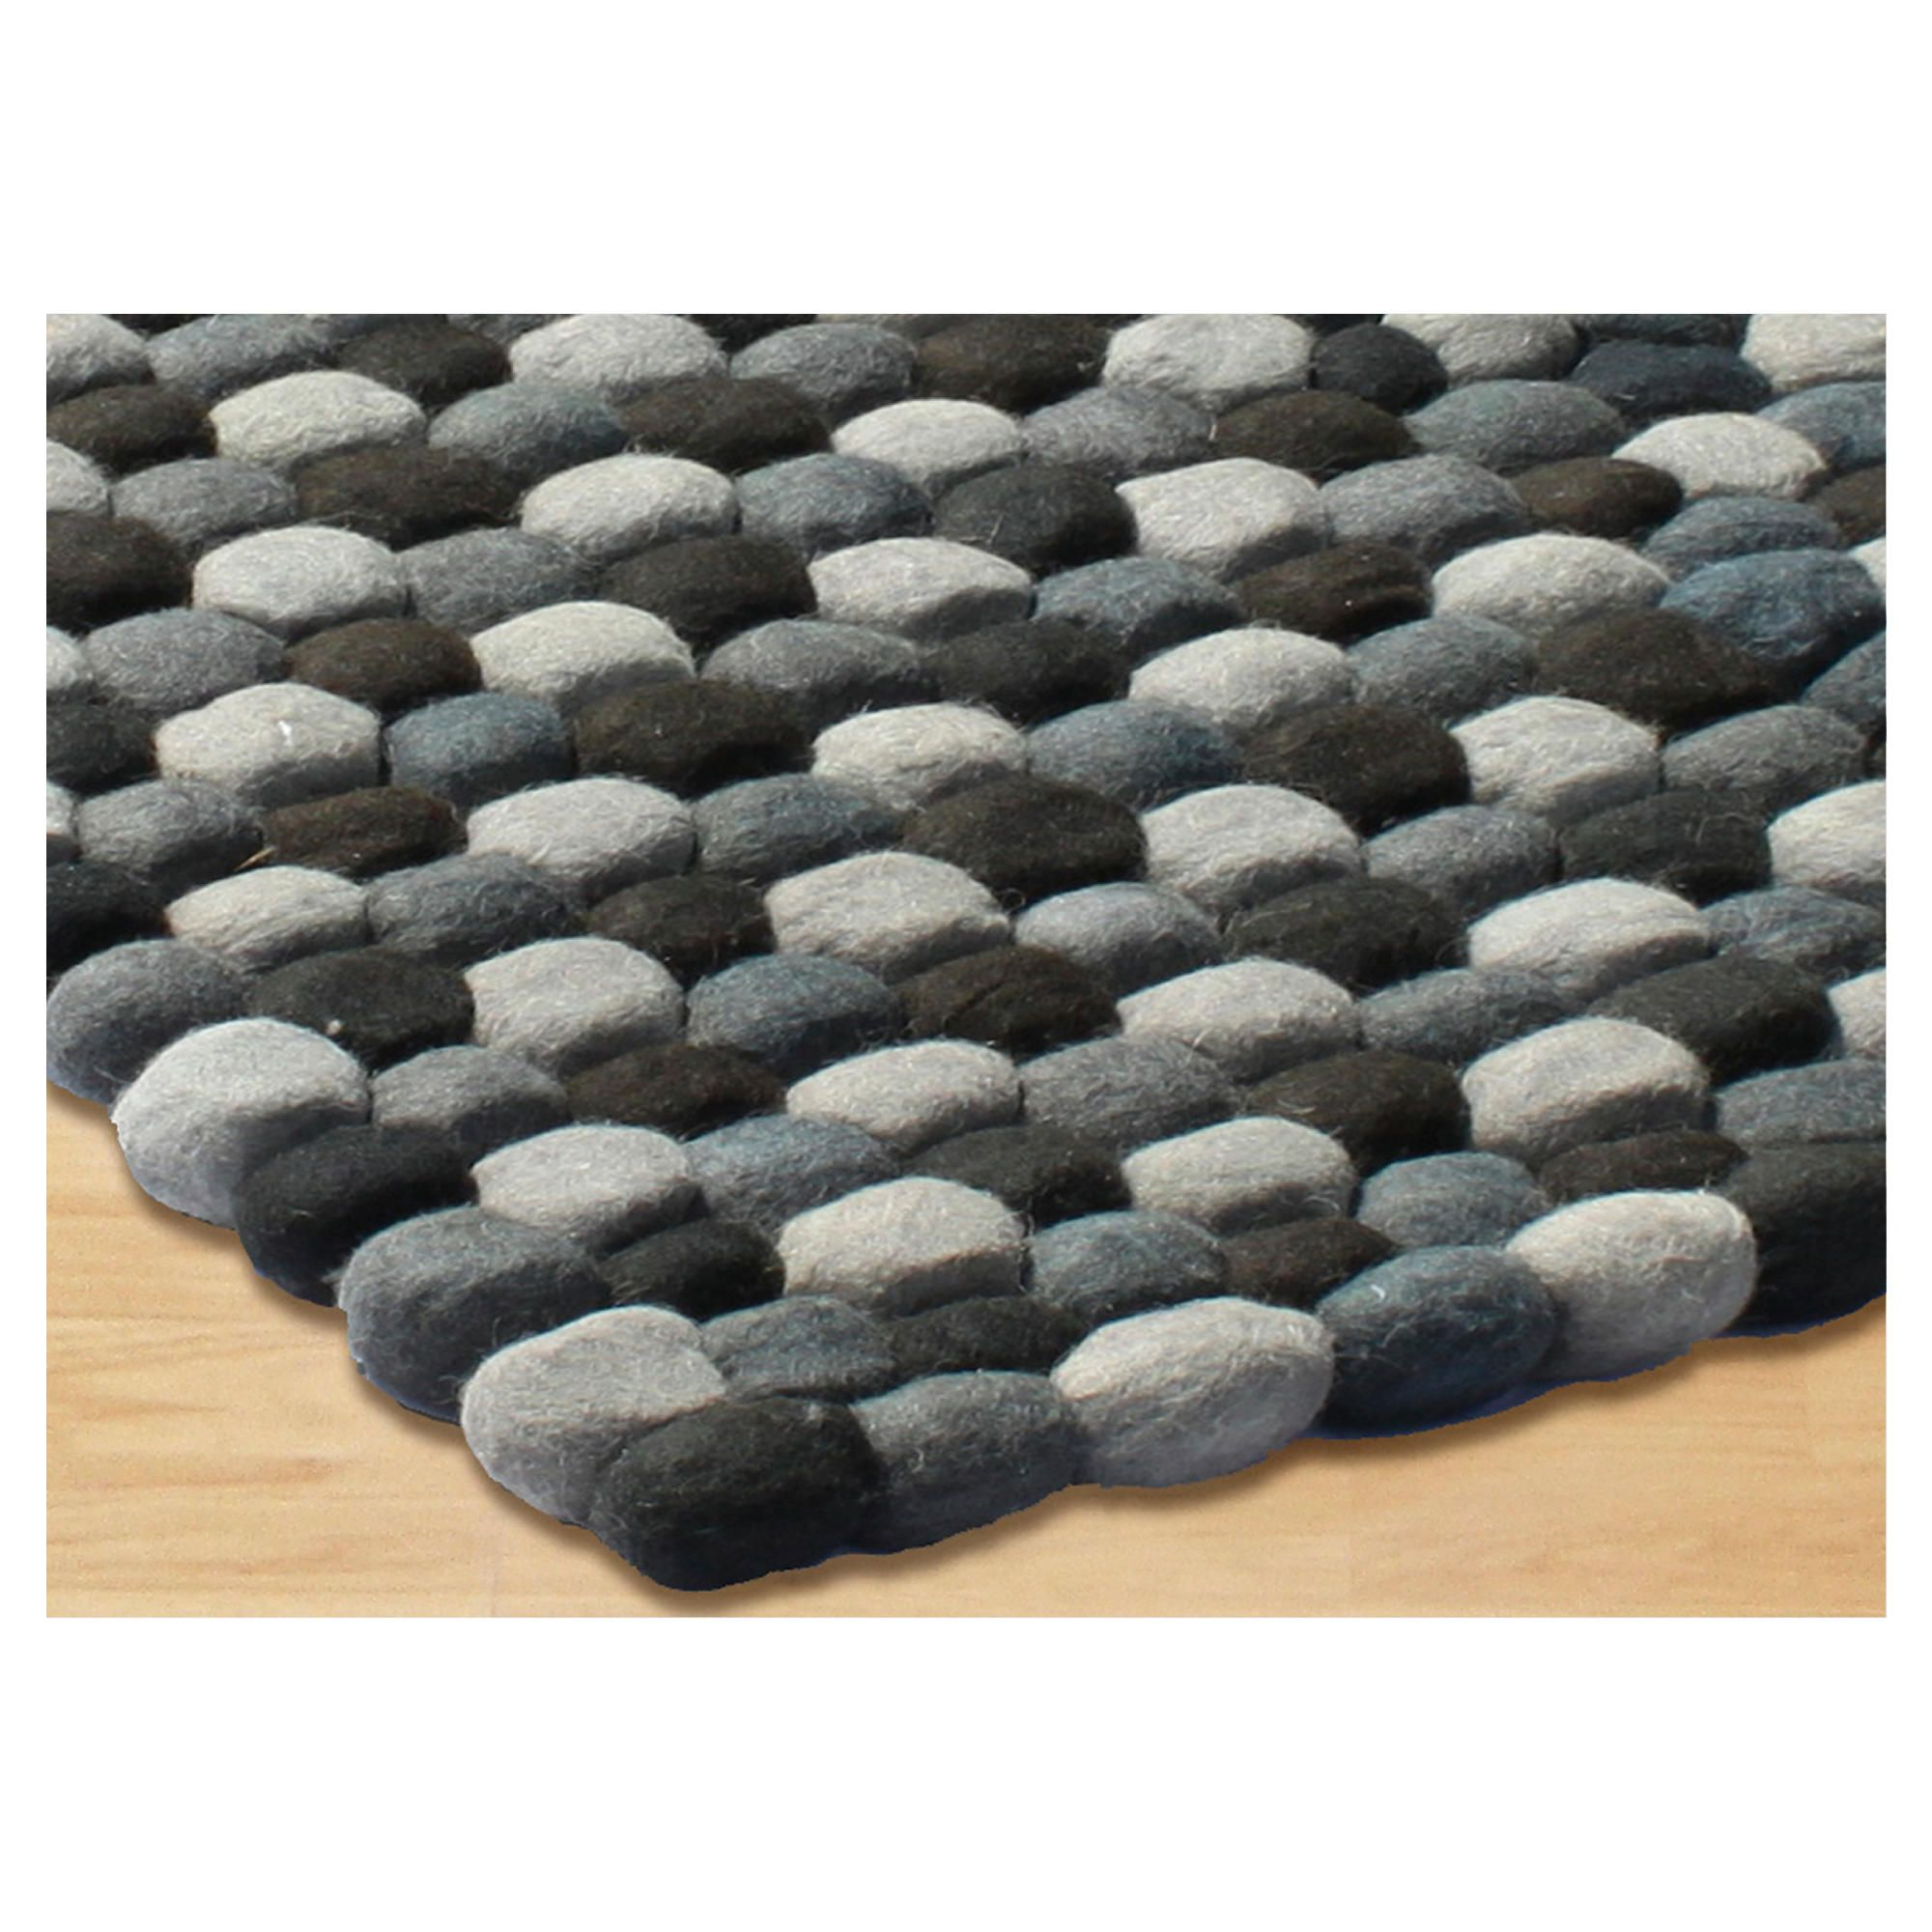 The Ultimate Rug co. Rocks Rug Grey120x170cm at Tesco Direct